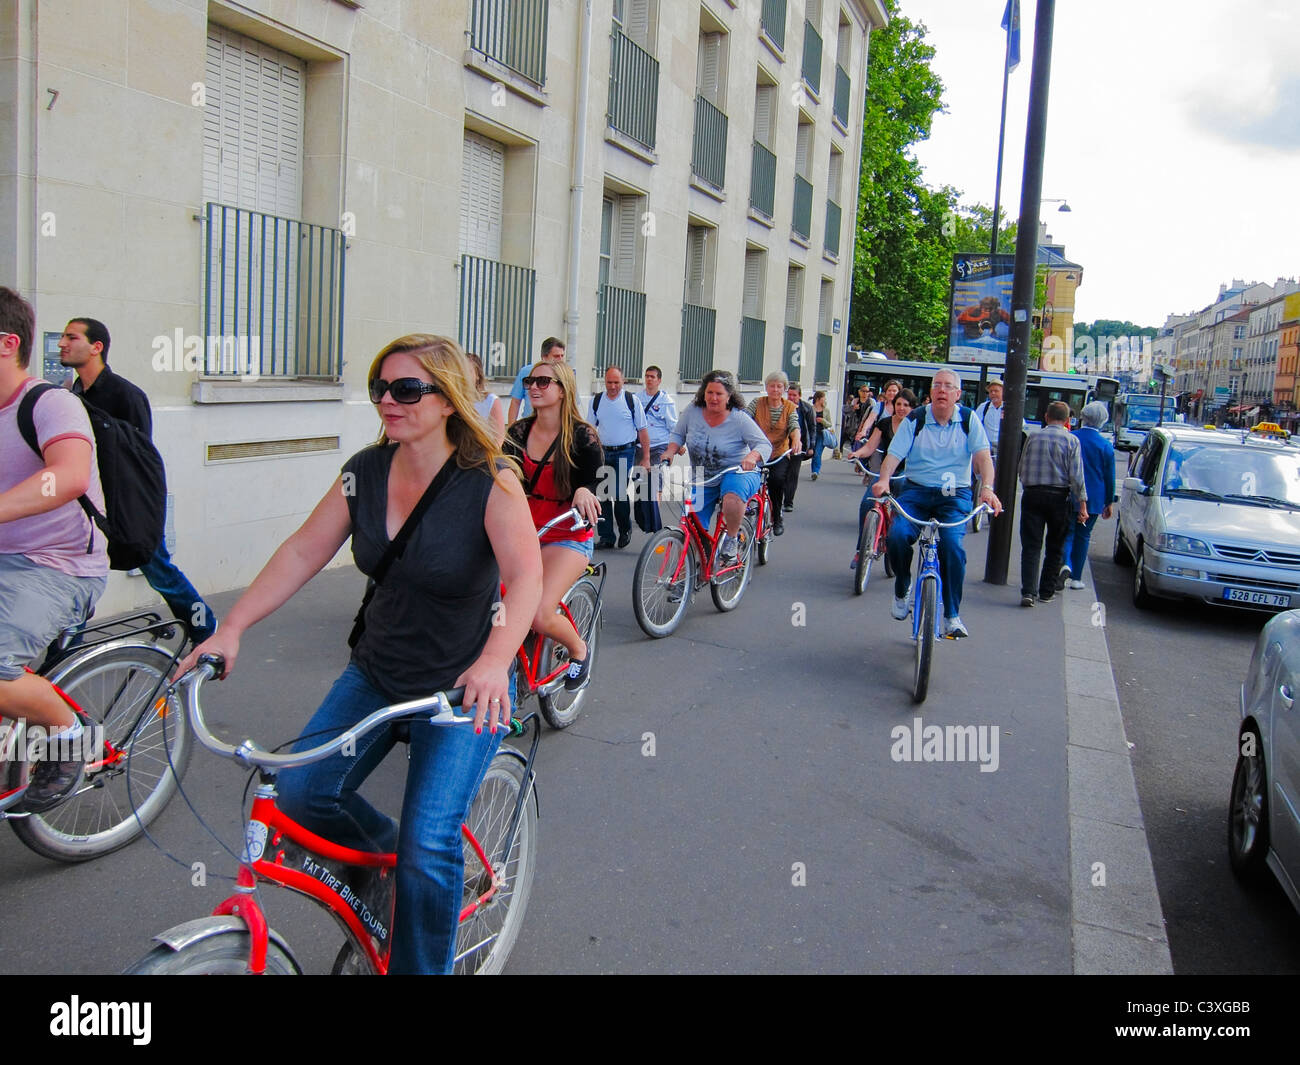 Ver-sailles, France, Urban Street Scenes, Group  Tourists Riding Rented Bicycles, bicycling - Stock Image